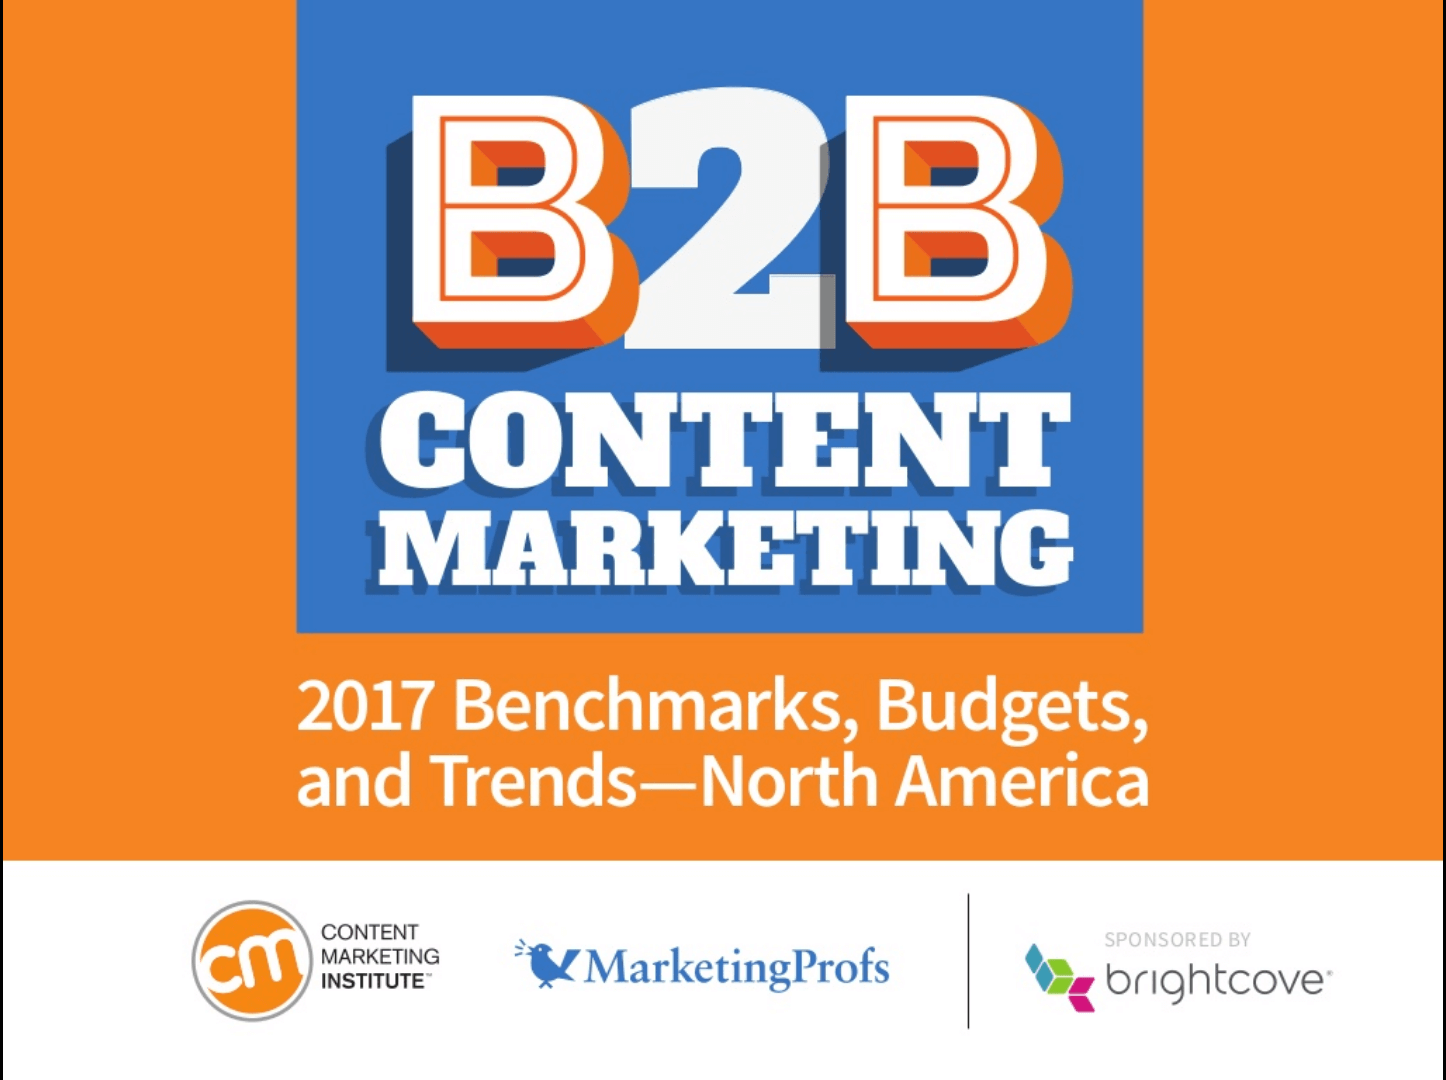 Content Marketing Survey Shows Marketers Still Behind in Metrics